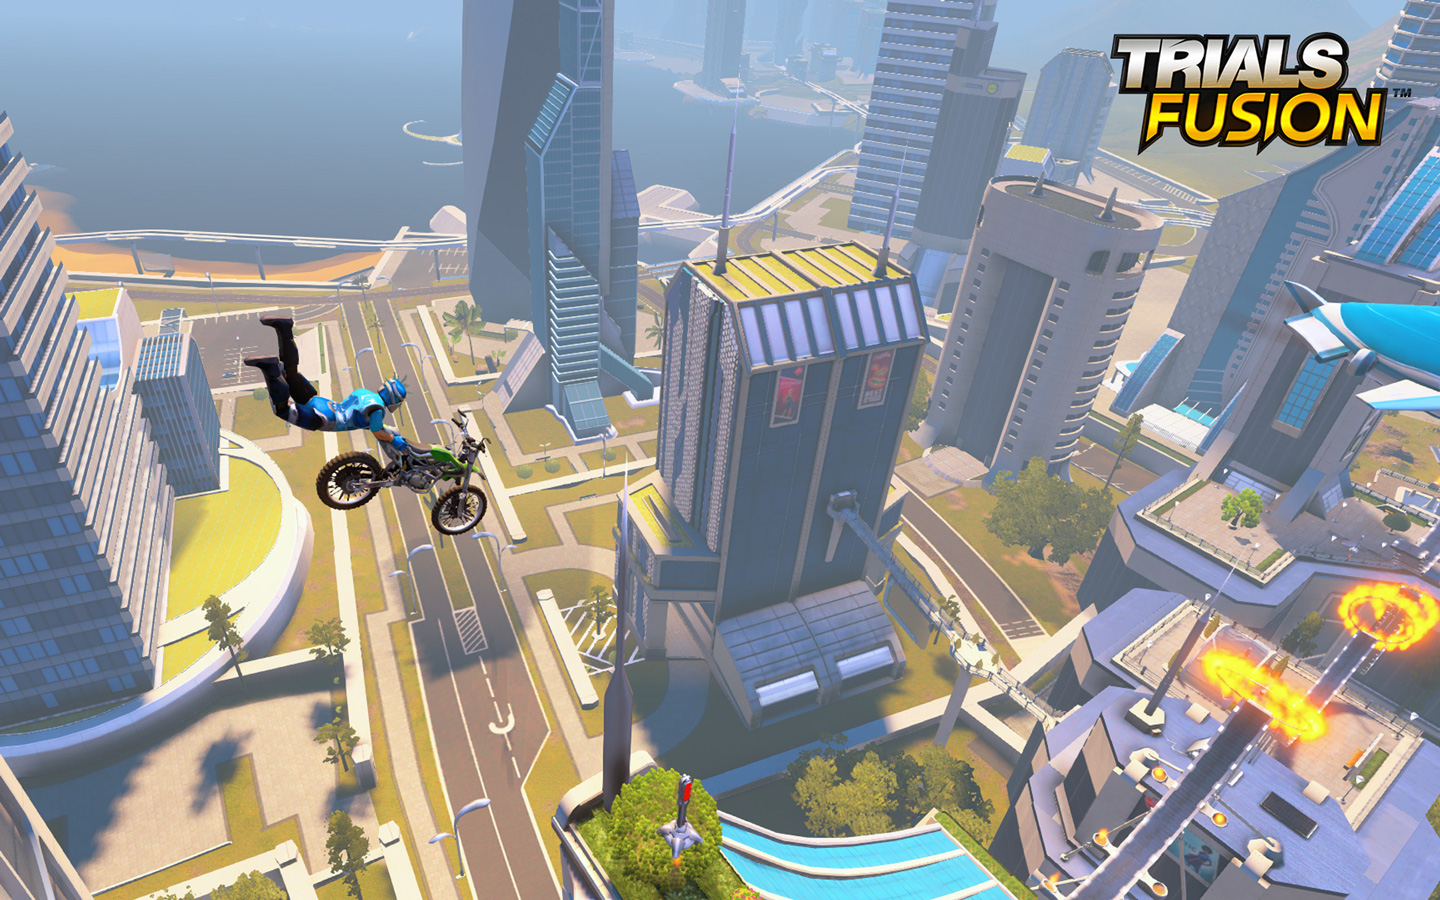 Free Trials Fusion Wallpaper in 1440x900